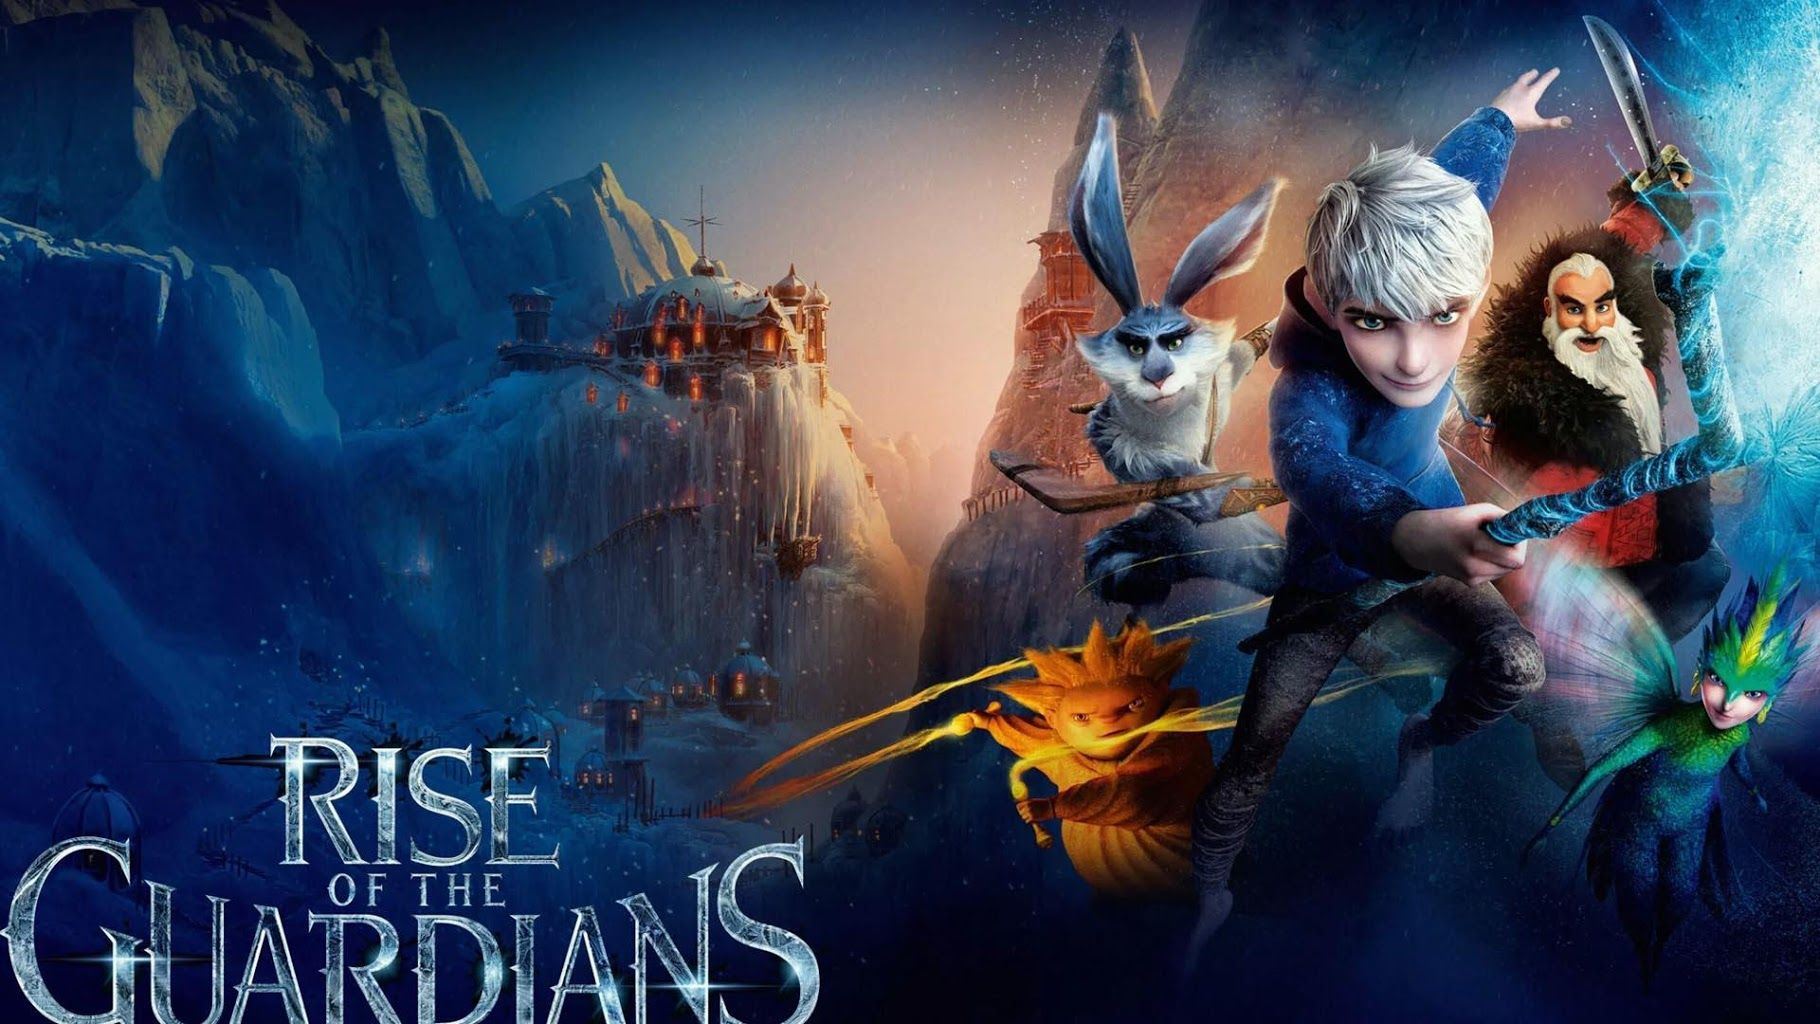 Rise Of The Guardians Wallpaper Hd Rise Of The Guardians 2012 Movie 1043181 Hd Wallpaper Backgrounds Download